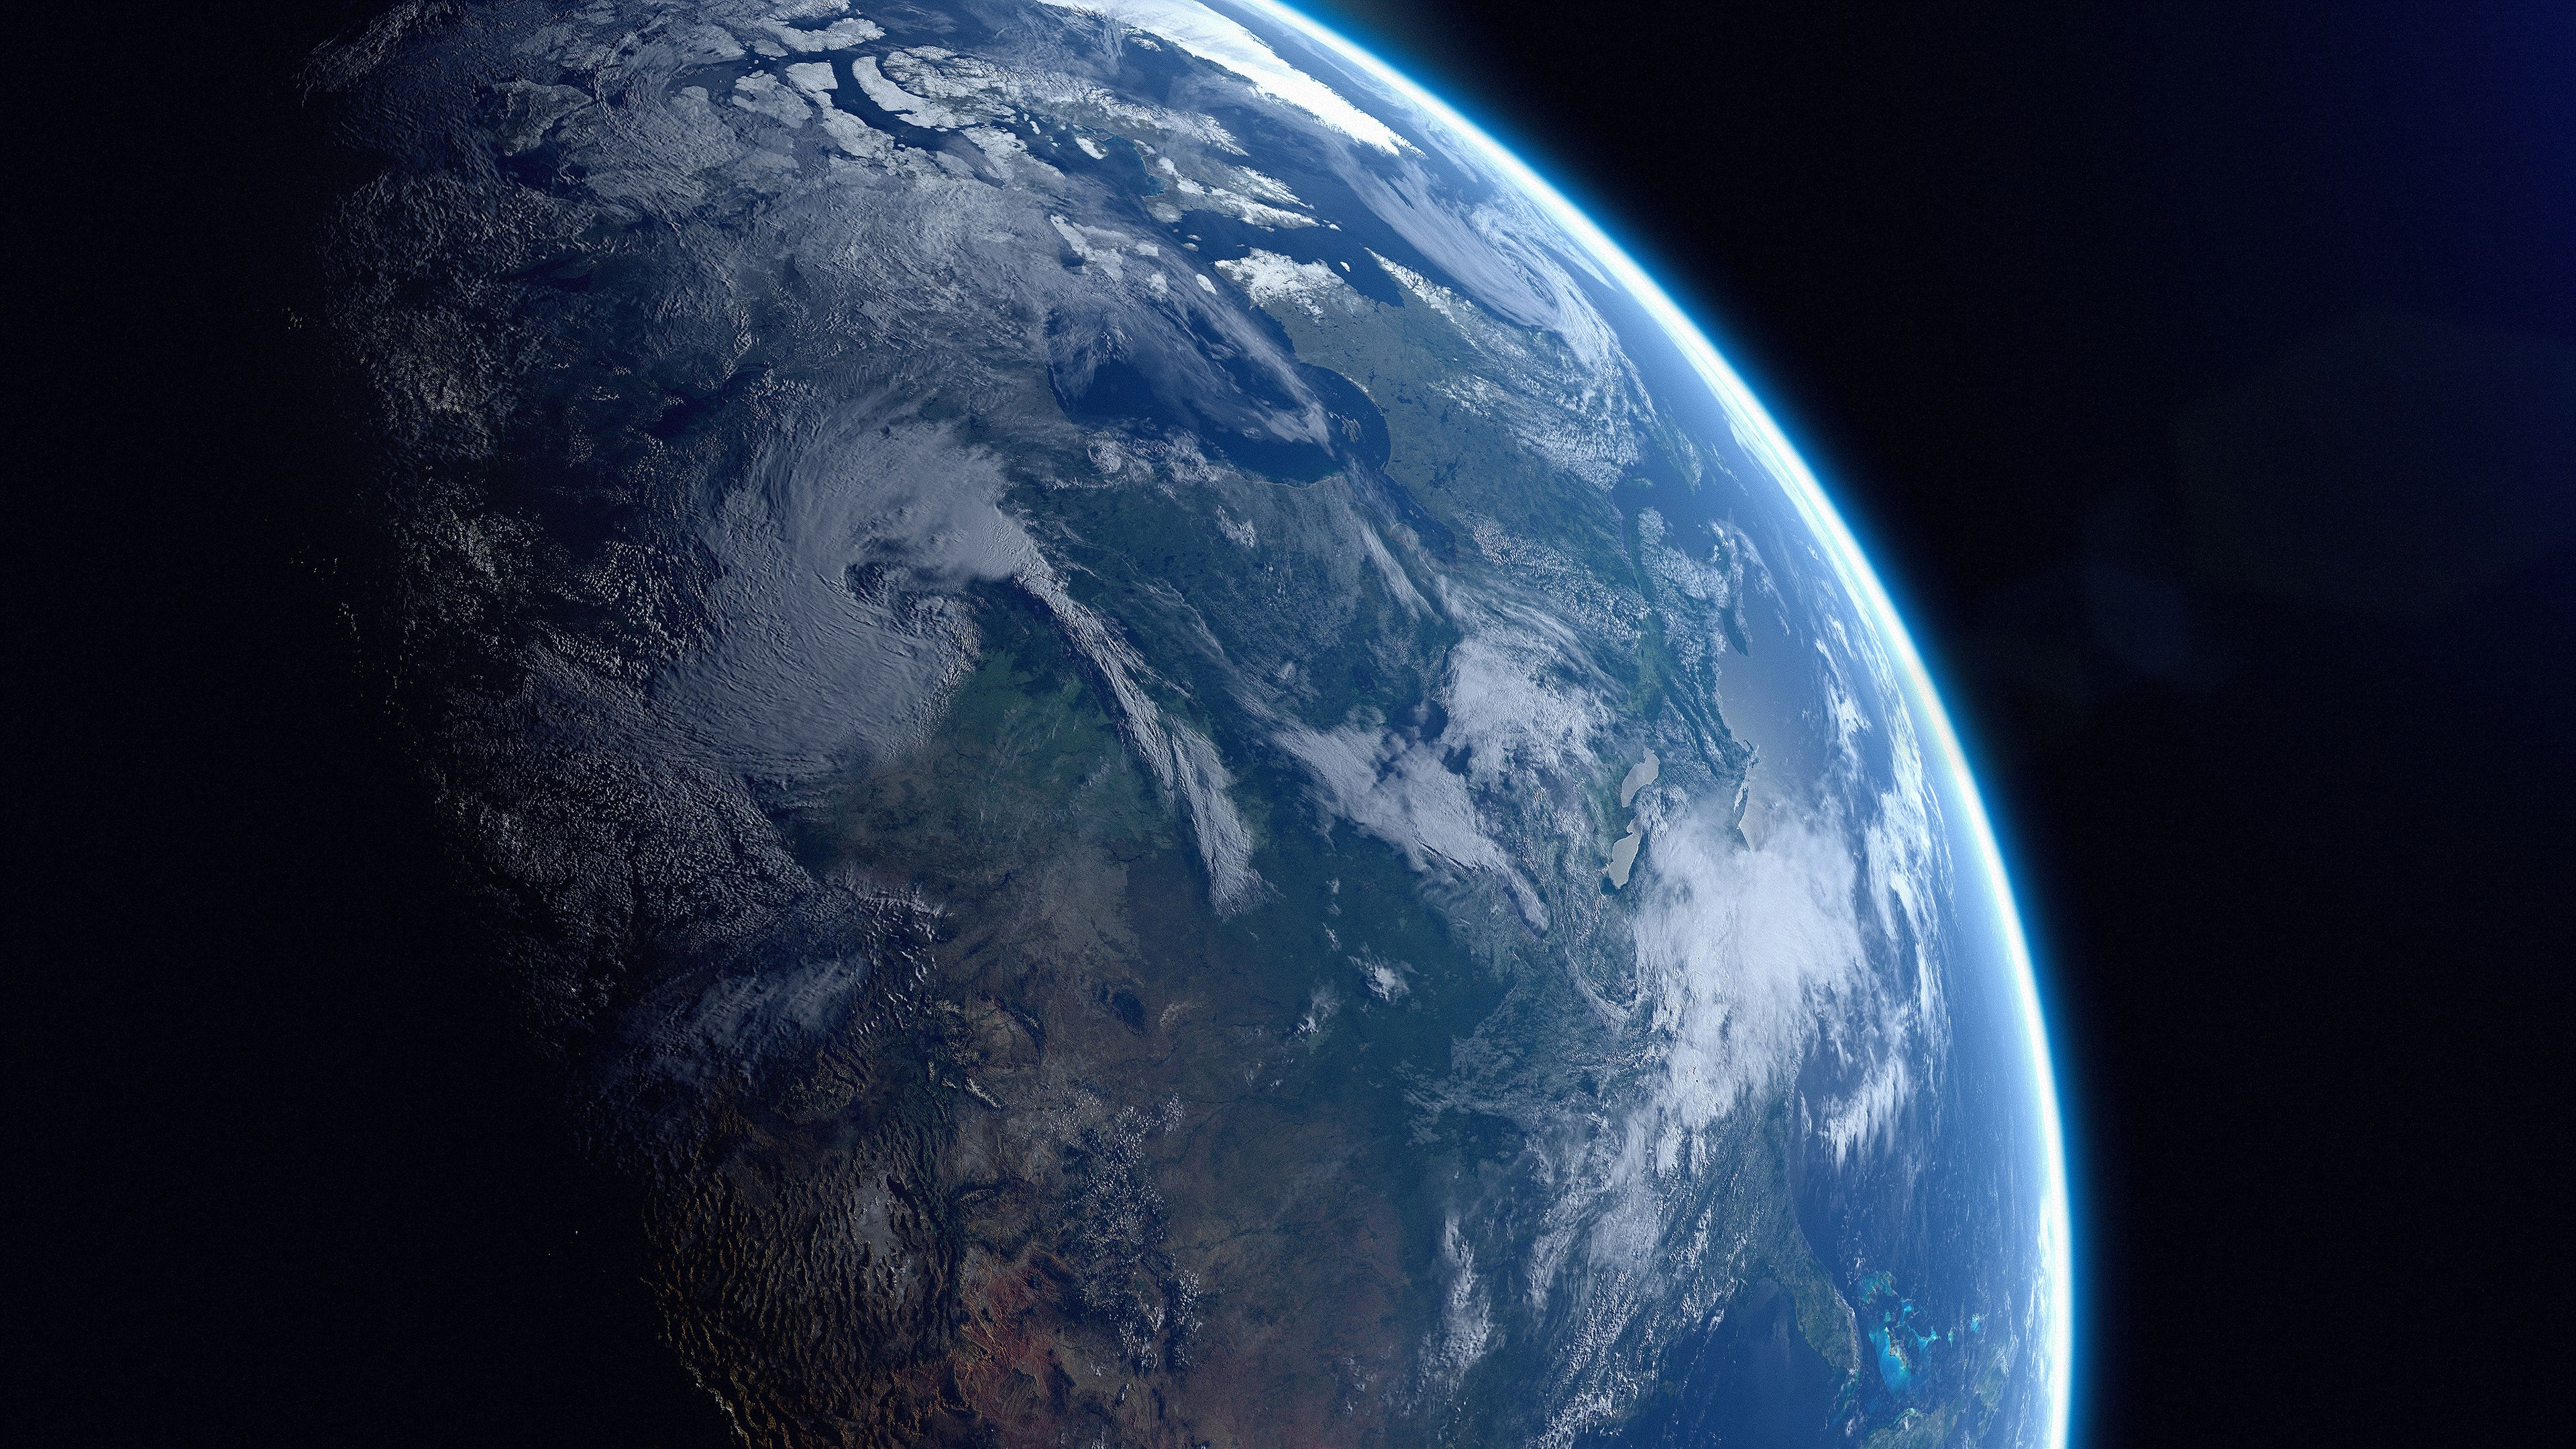 Planet Earth 4k Wallpapers Top Free Planet Earth 4k Backgrounds Wallpaperaccess